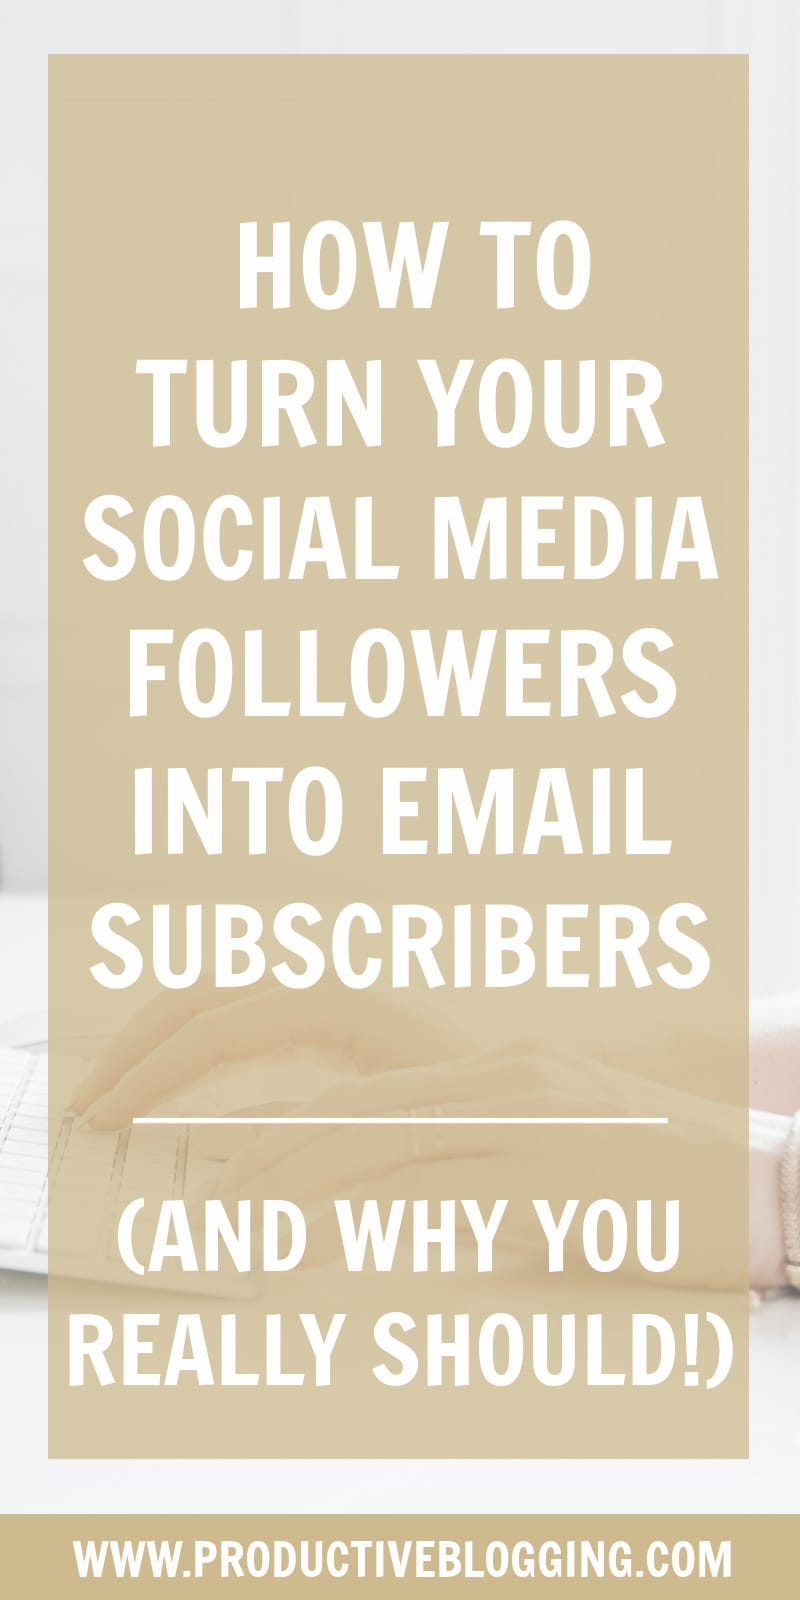 So you have built up a good social media following… that's great! But don't stop there. Turn your social media followers into email subscribers to really reap the benefits … and to protect yourself against future algorithm changes… or worse! #socialmediafollowers #emailsubscribers #emailmarketing #emaillist #emaillistgrowth #growyouremaillist #emailmarketingtips #listbuilding #bloggers #bloggingtips #growyourblog #bloggrowth #productivitytips #productiveblogging #blogsmarternotharder